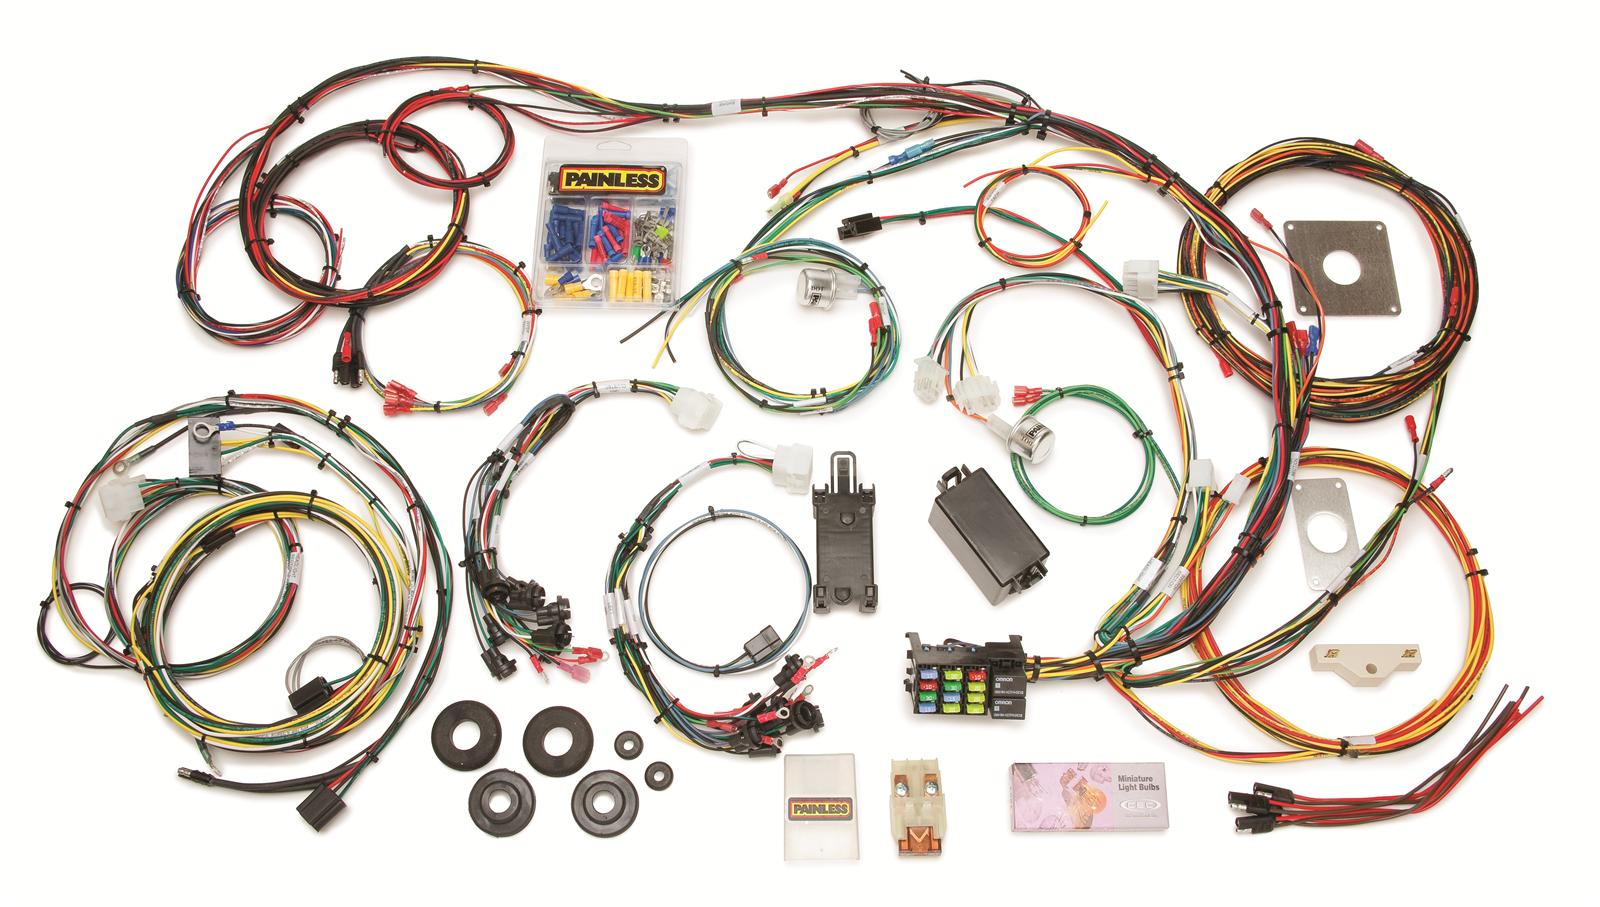 Painless Wiring Harness 1993 Mustang Chassis Diagram Libraries Performance 22 Circuit 1965 66 Harnessespainless